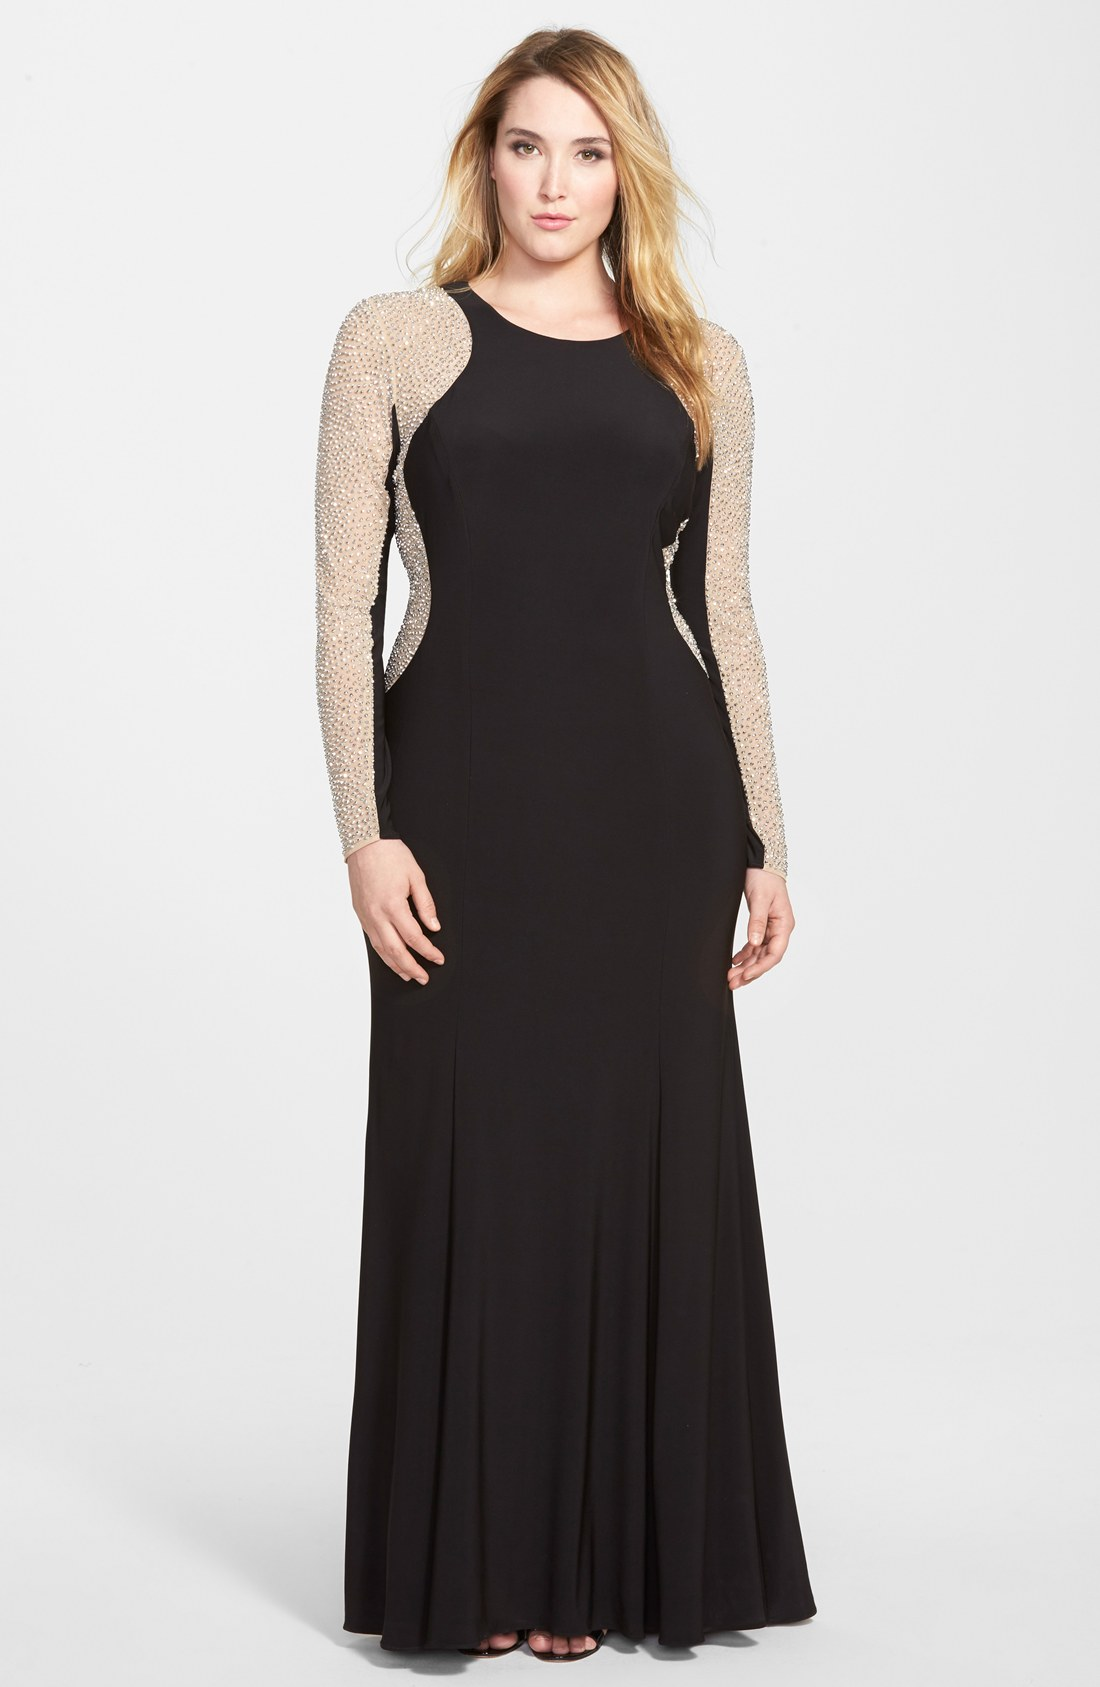 xscape dresses xscape embellished jersey gown (plus size) | nordstrom gsojaet